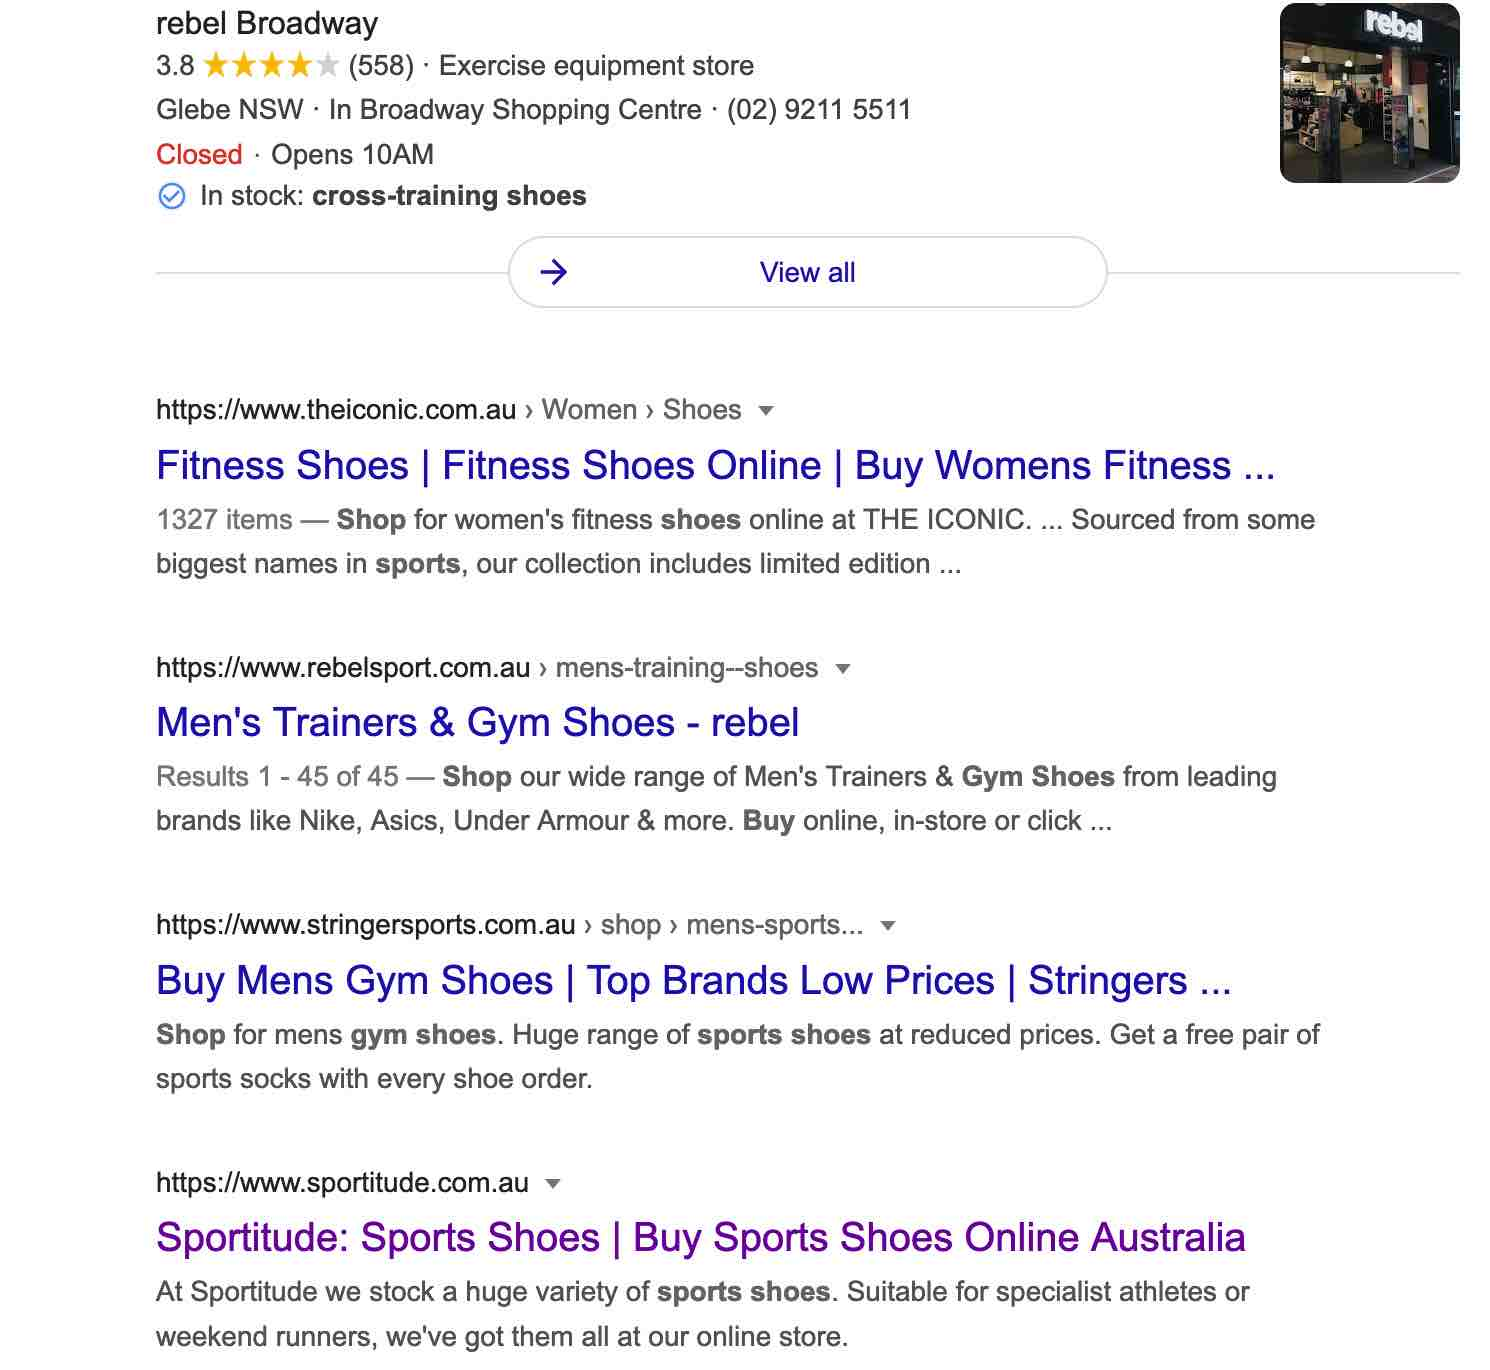 product pages example - seo sydney experts